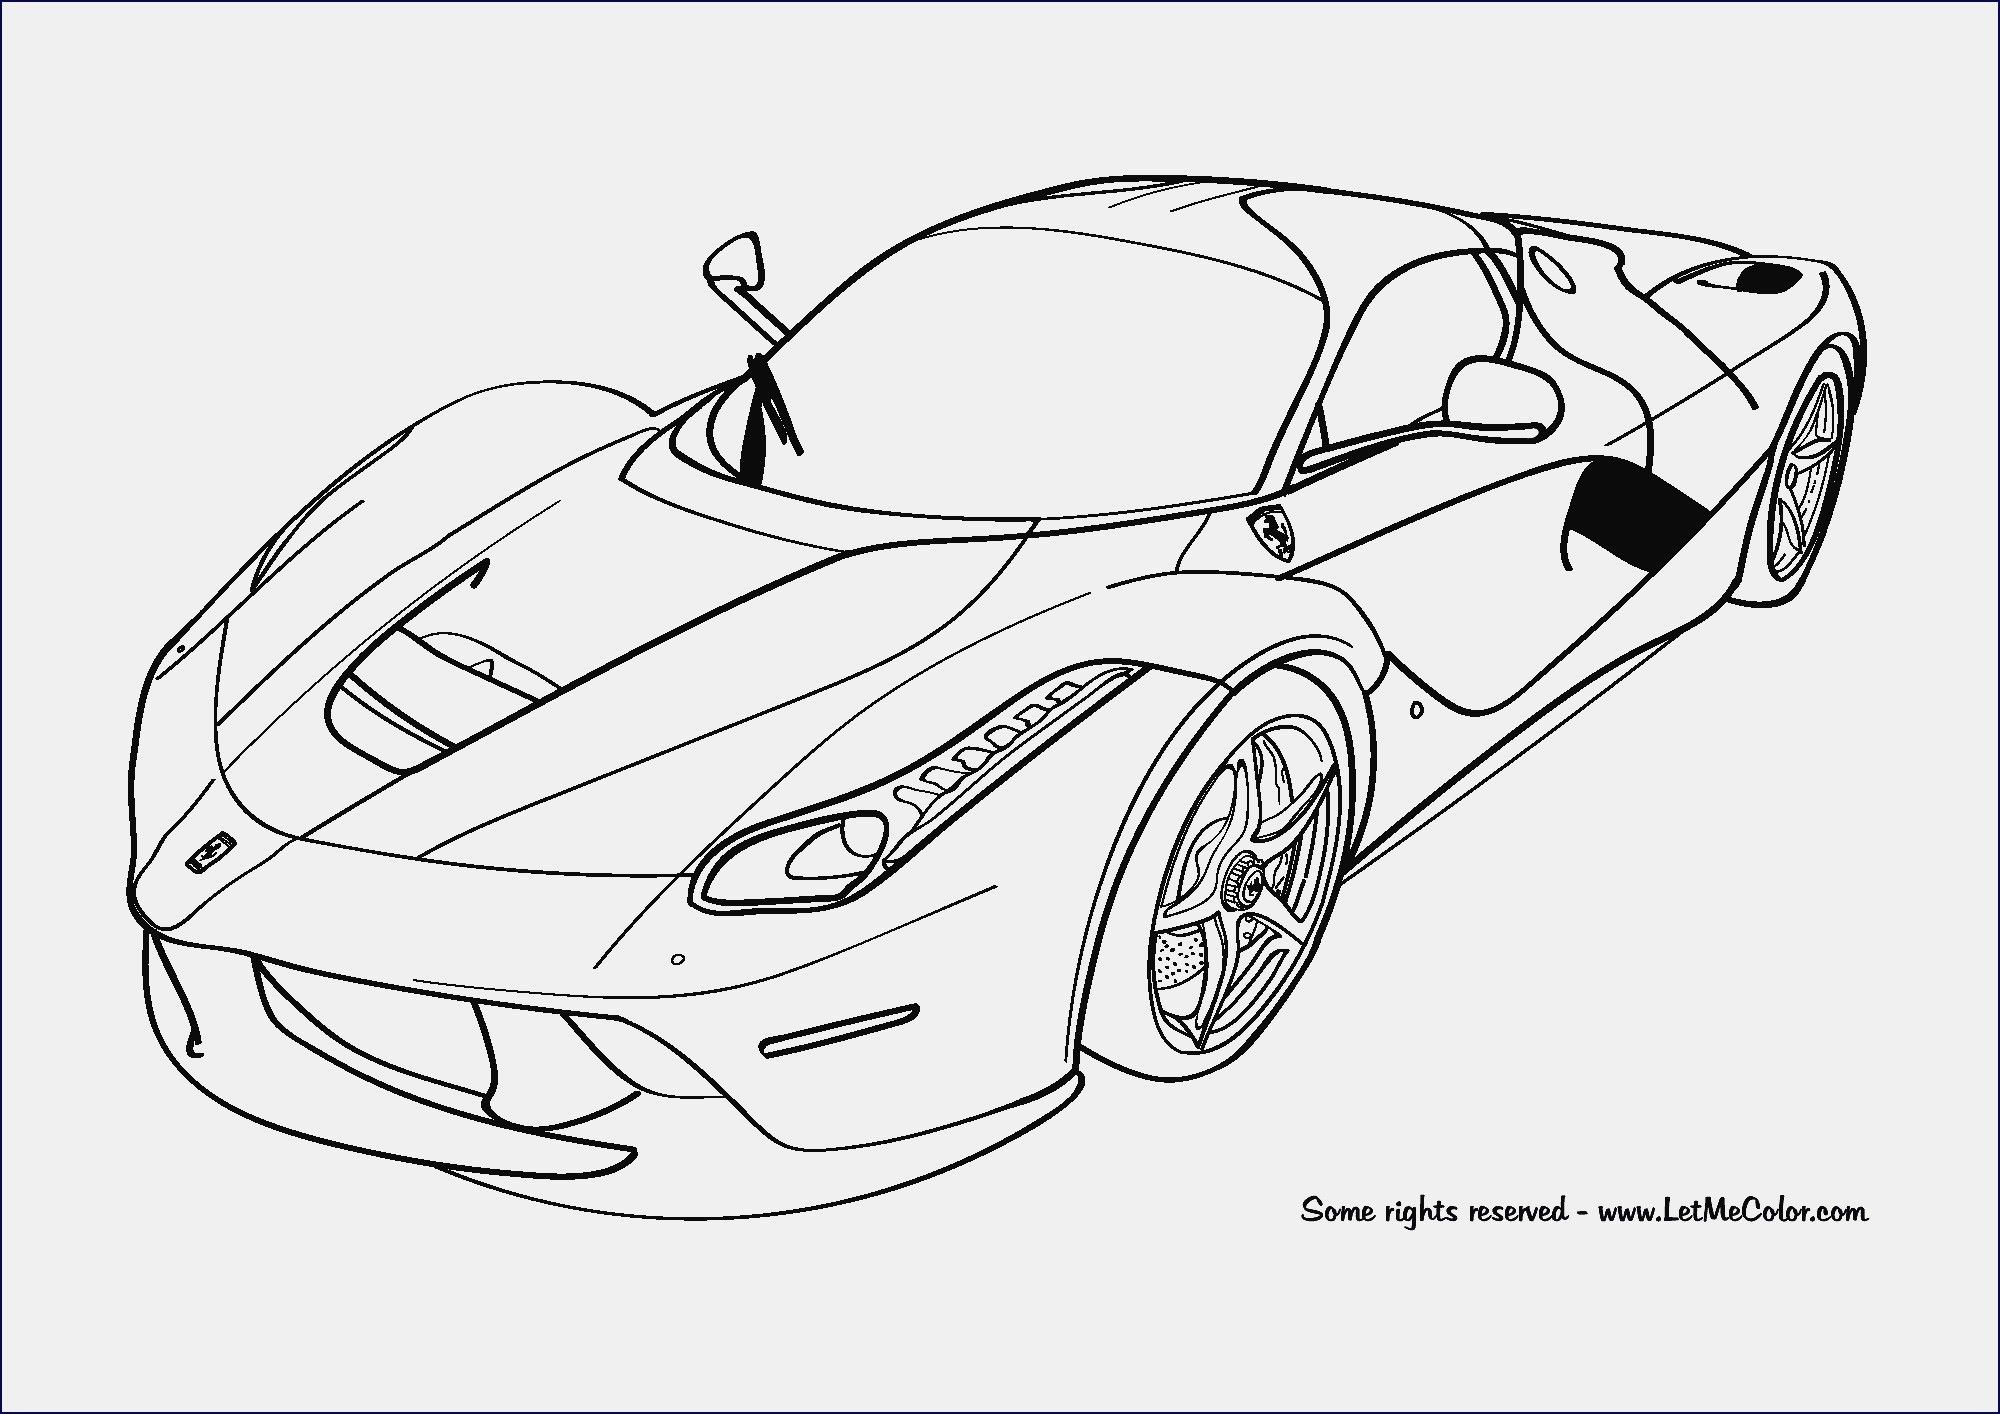 Frisch Malvorlagen Ninja Turtles Zum Drucken Cars Coloring Pages Sports Coloring Pages Race Car Coloring Pages